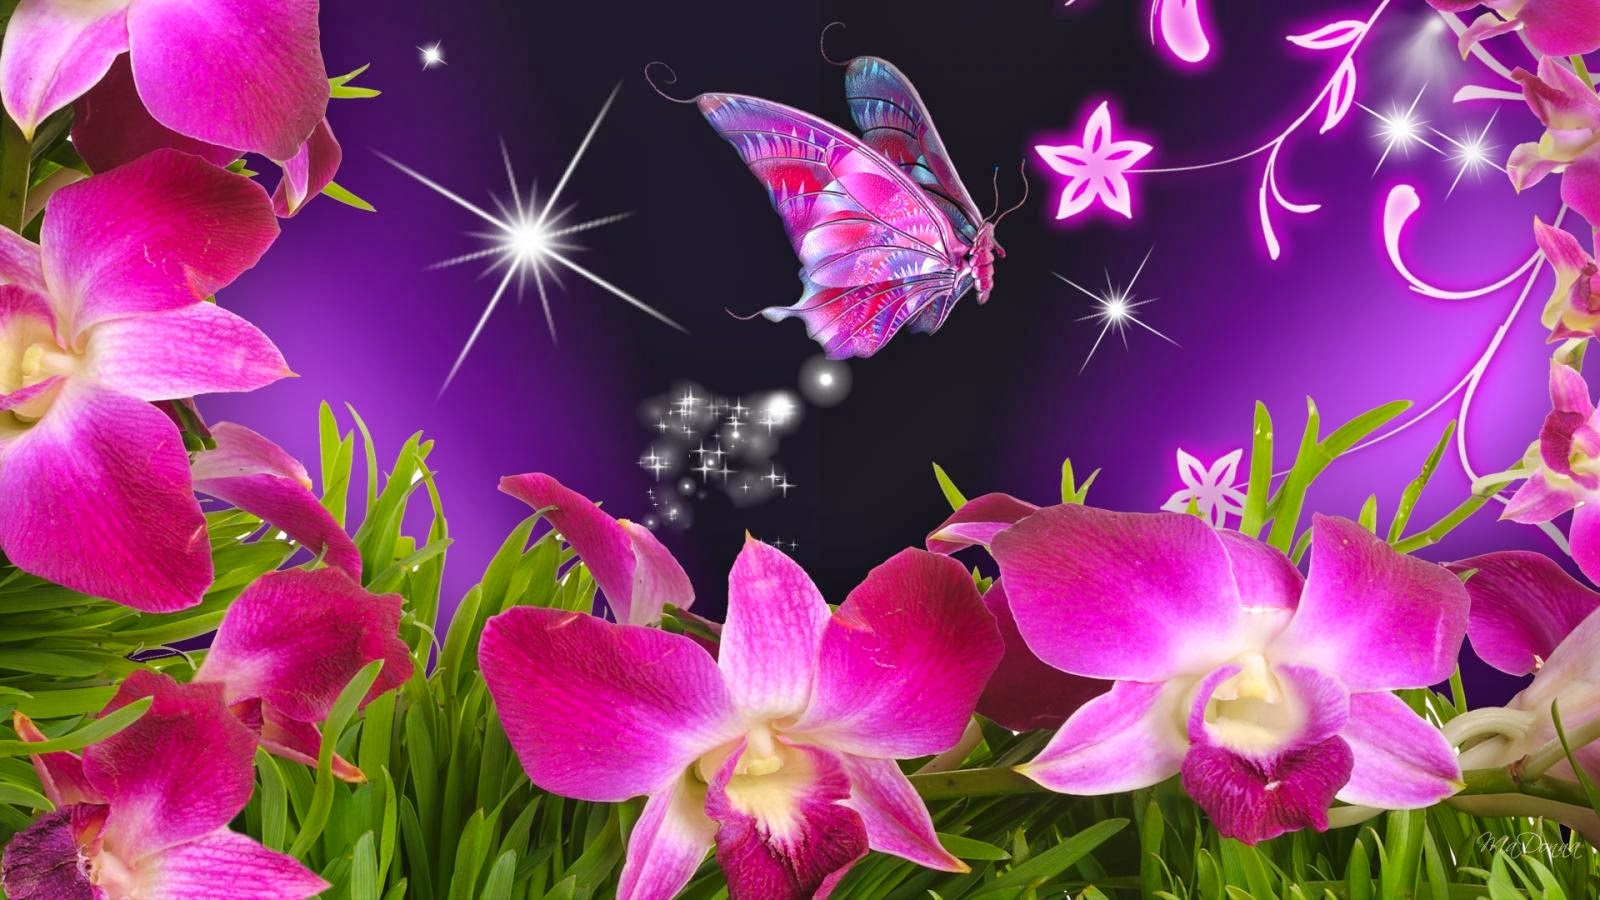 Download images of flowers and butterflies vector transparent stock Download images of flowers and butterflies - ClipartFest vector transparent stock